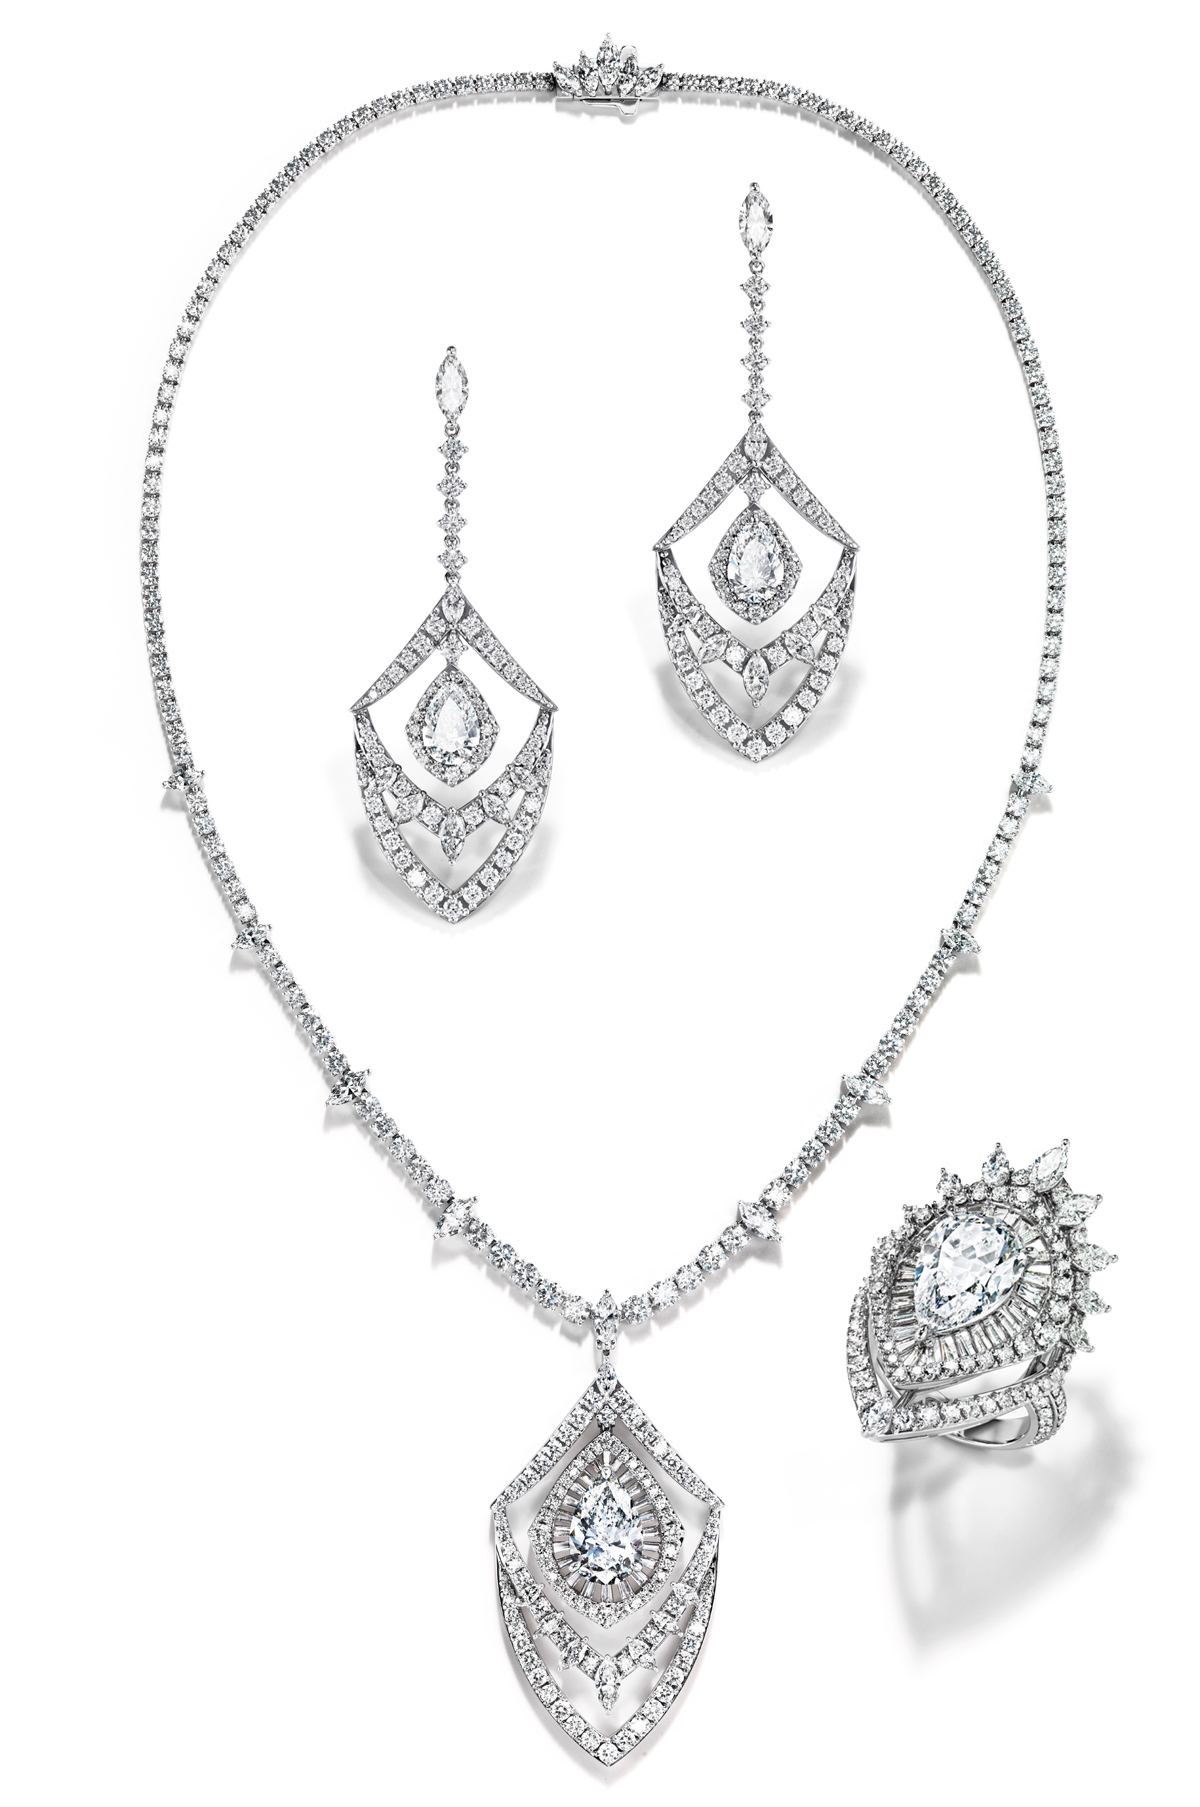 Ritz Pari set from the Paris par Tasaki collection